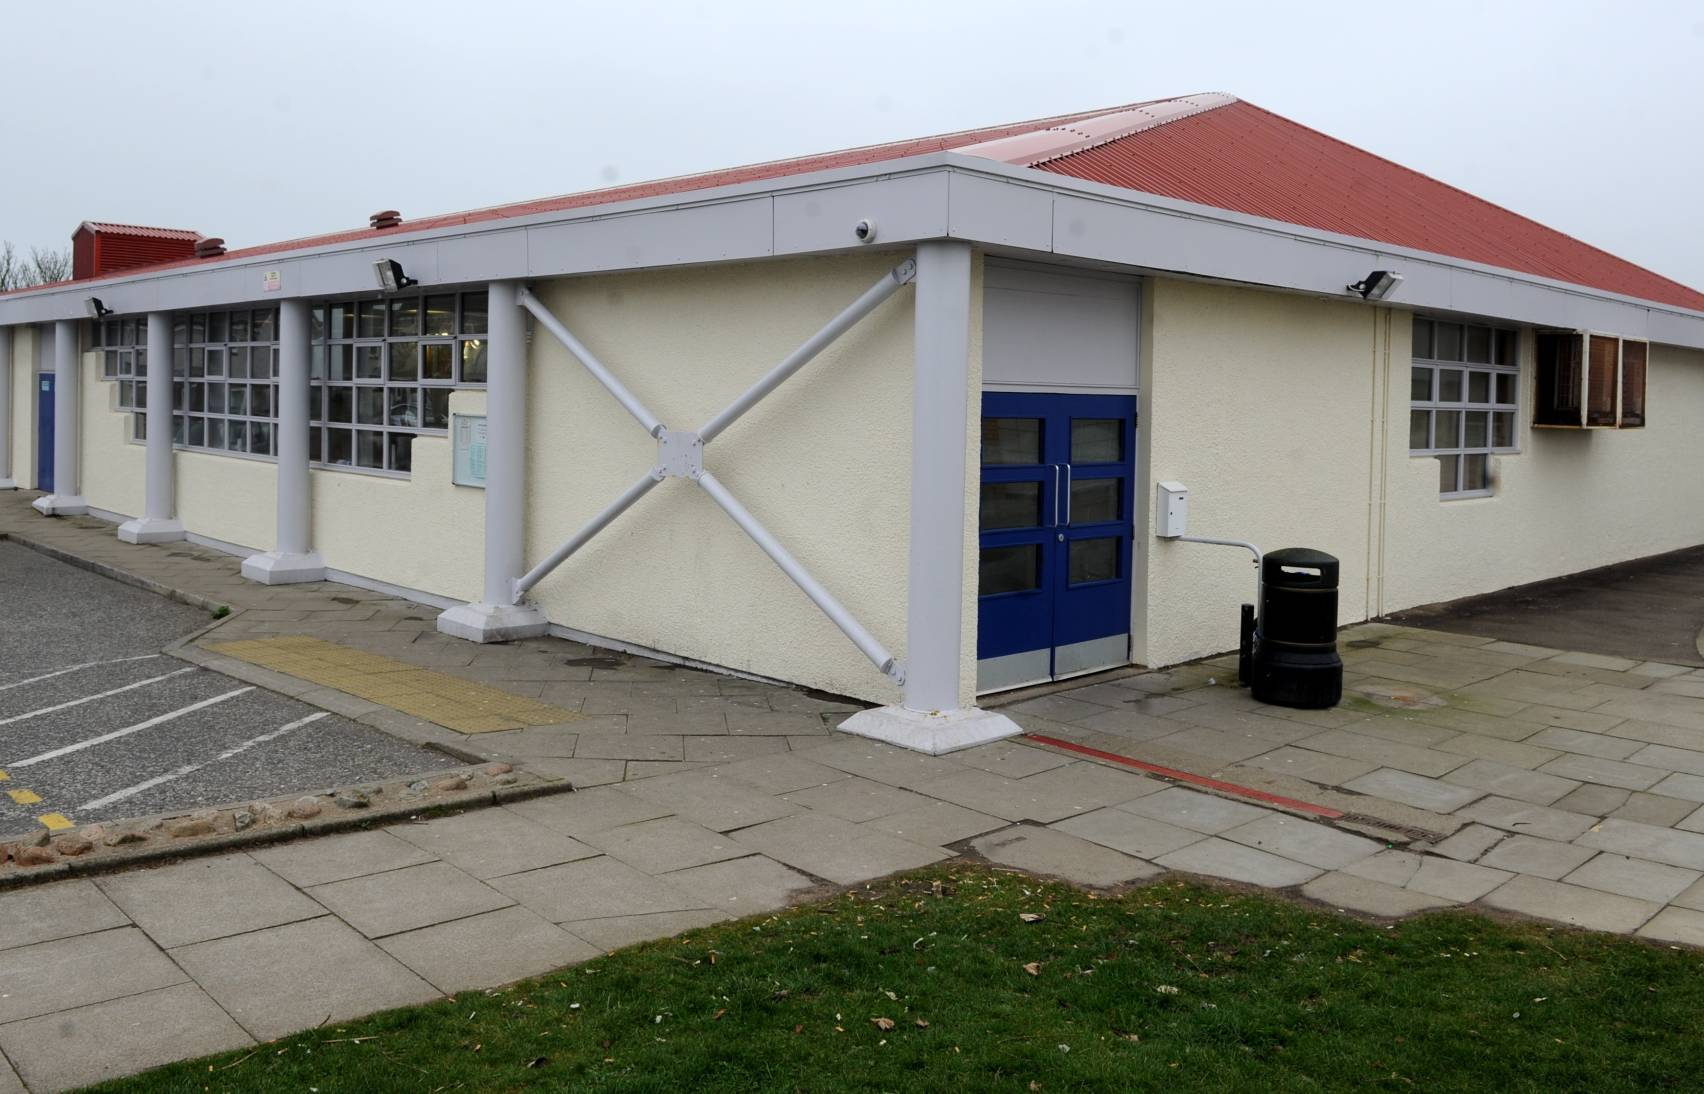 Portlethen Swimming Pool will be closed for two weeks